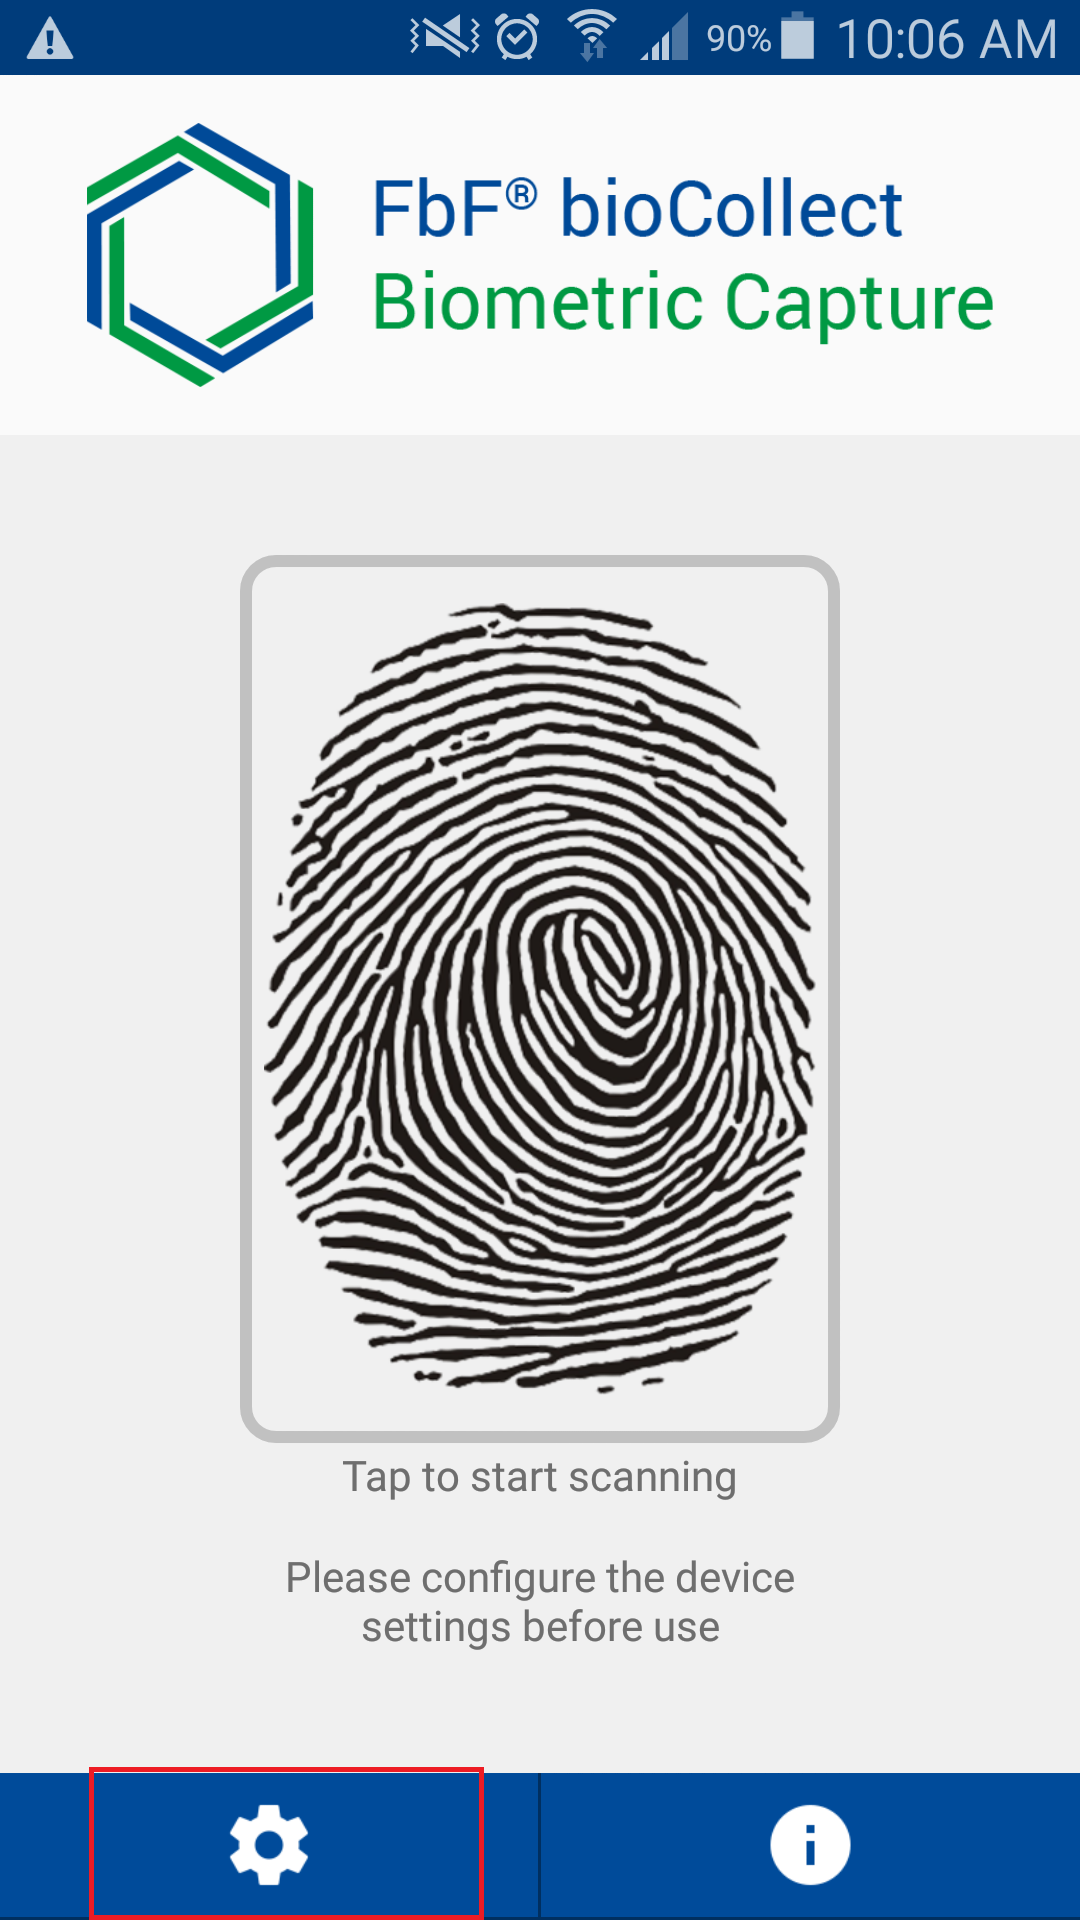 Click on the Settings button to configure your fingerprint scanner.